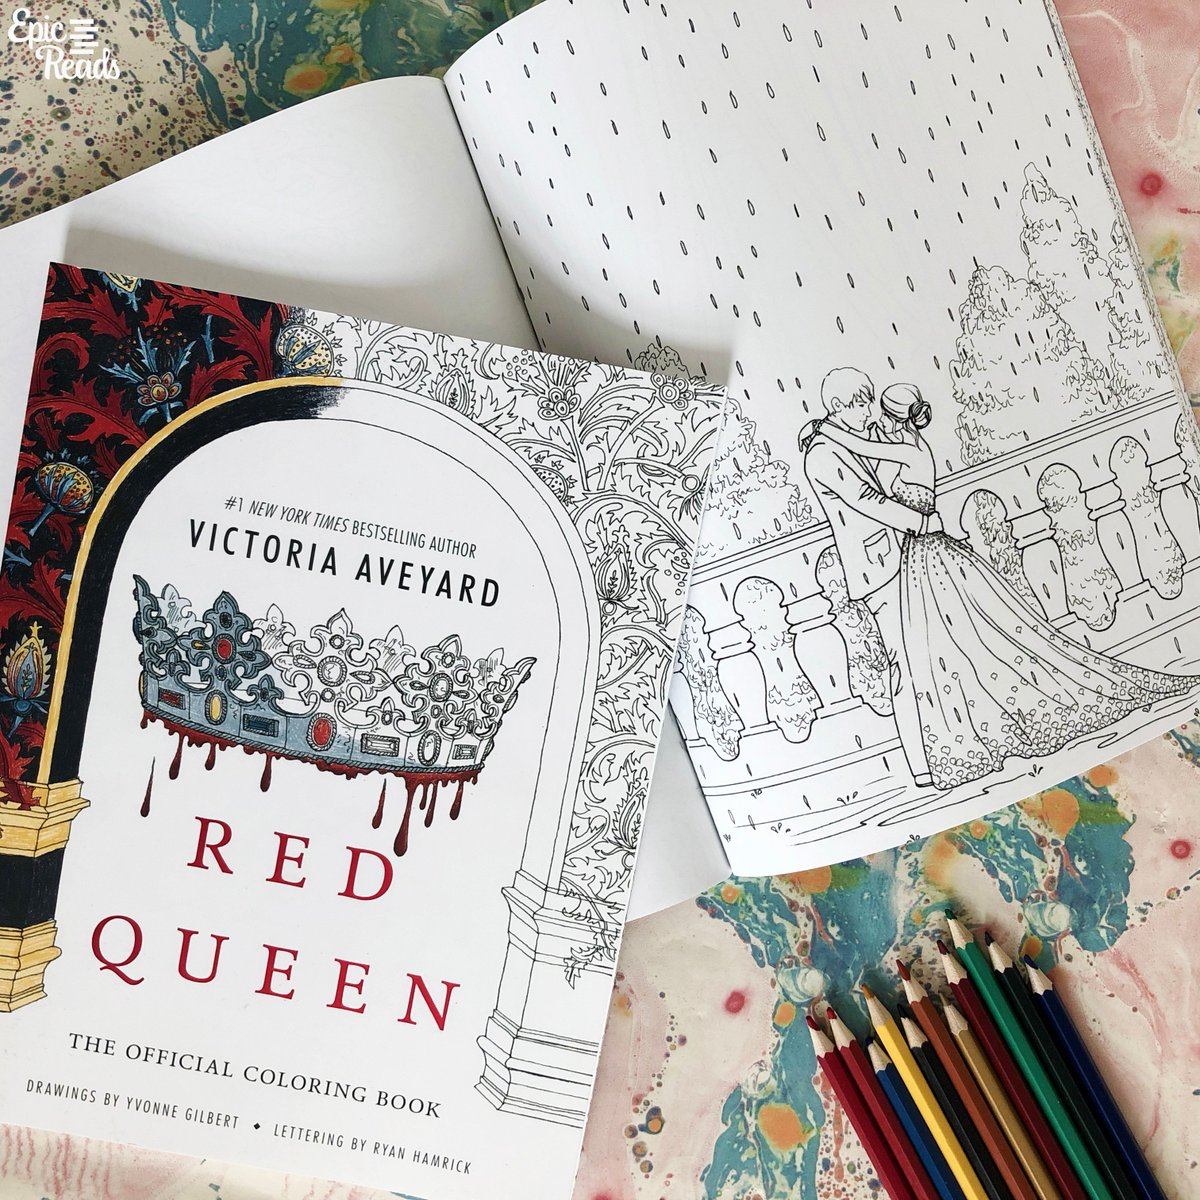 Epic Reads On Twitter One For Red Queen And One For The Selection